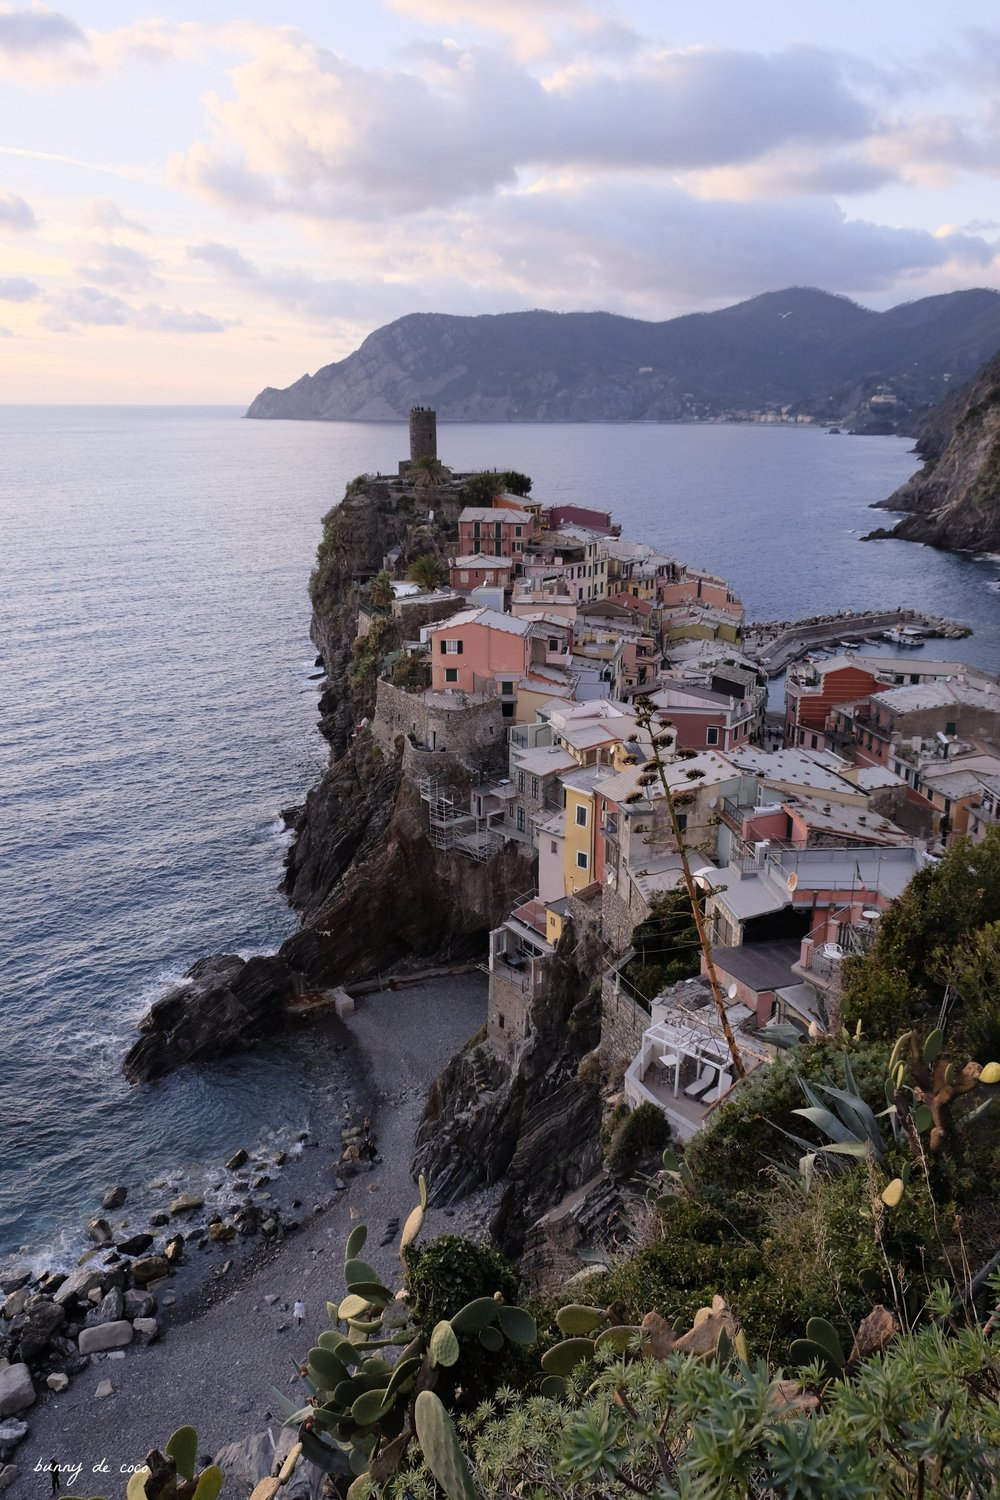 The prettiest spot in Vernazza for the sunset!